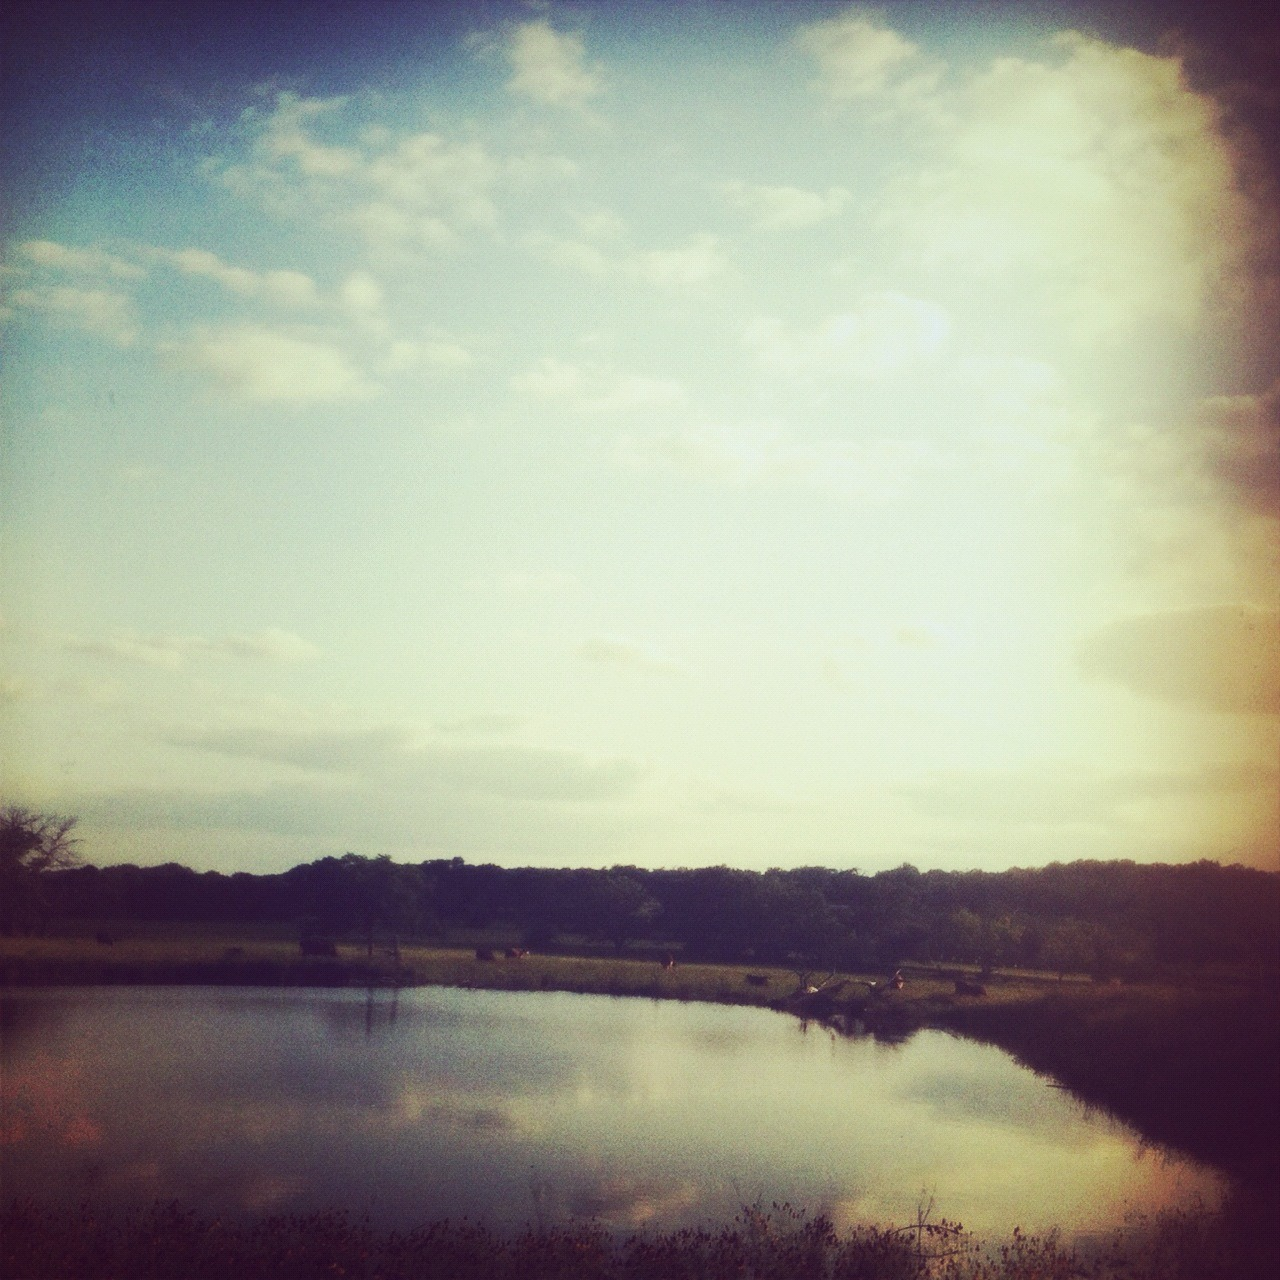 On the way to Enchanted Rock for our SOTBM shoot… it was starting to get interesting….and beautiful.